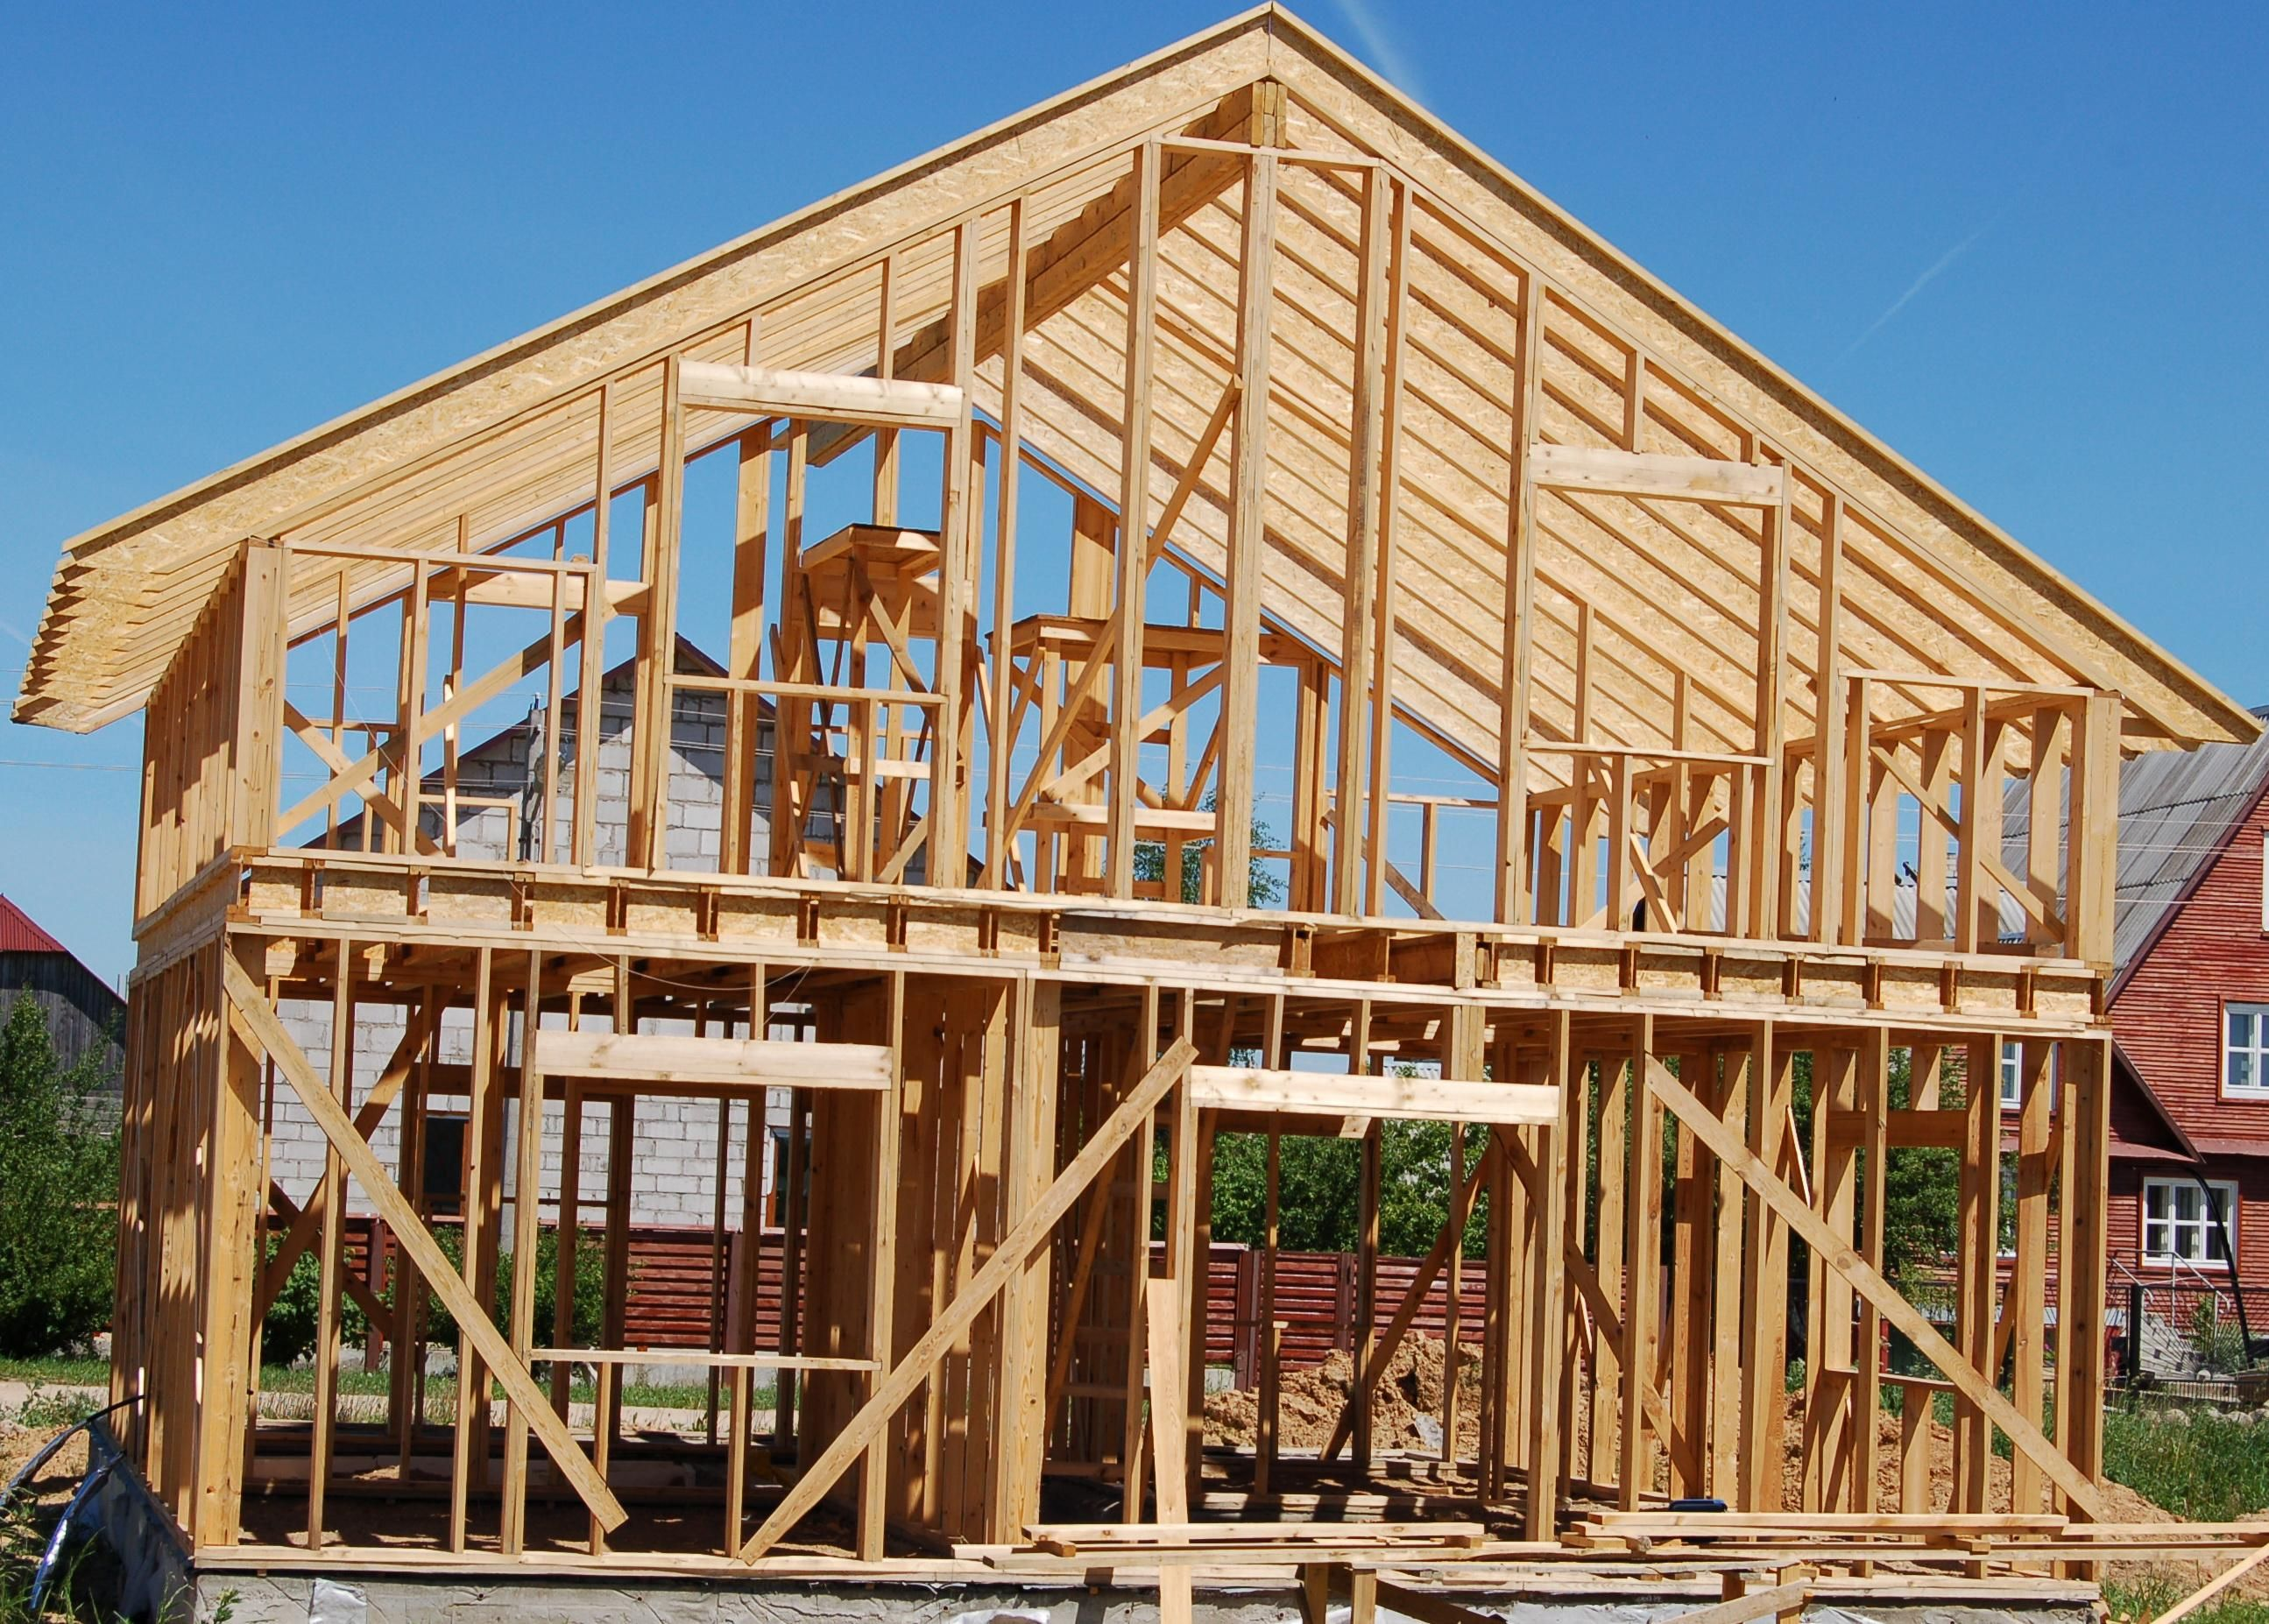 wood frame house images amp pictures becuo construction stock photo ...